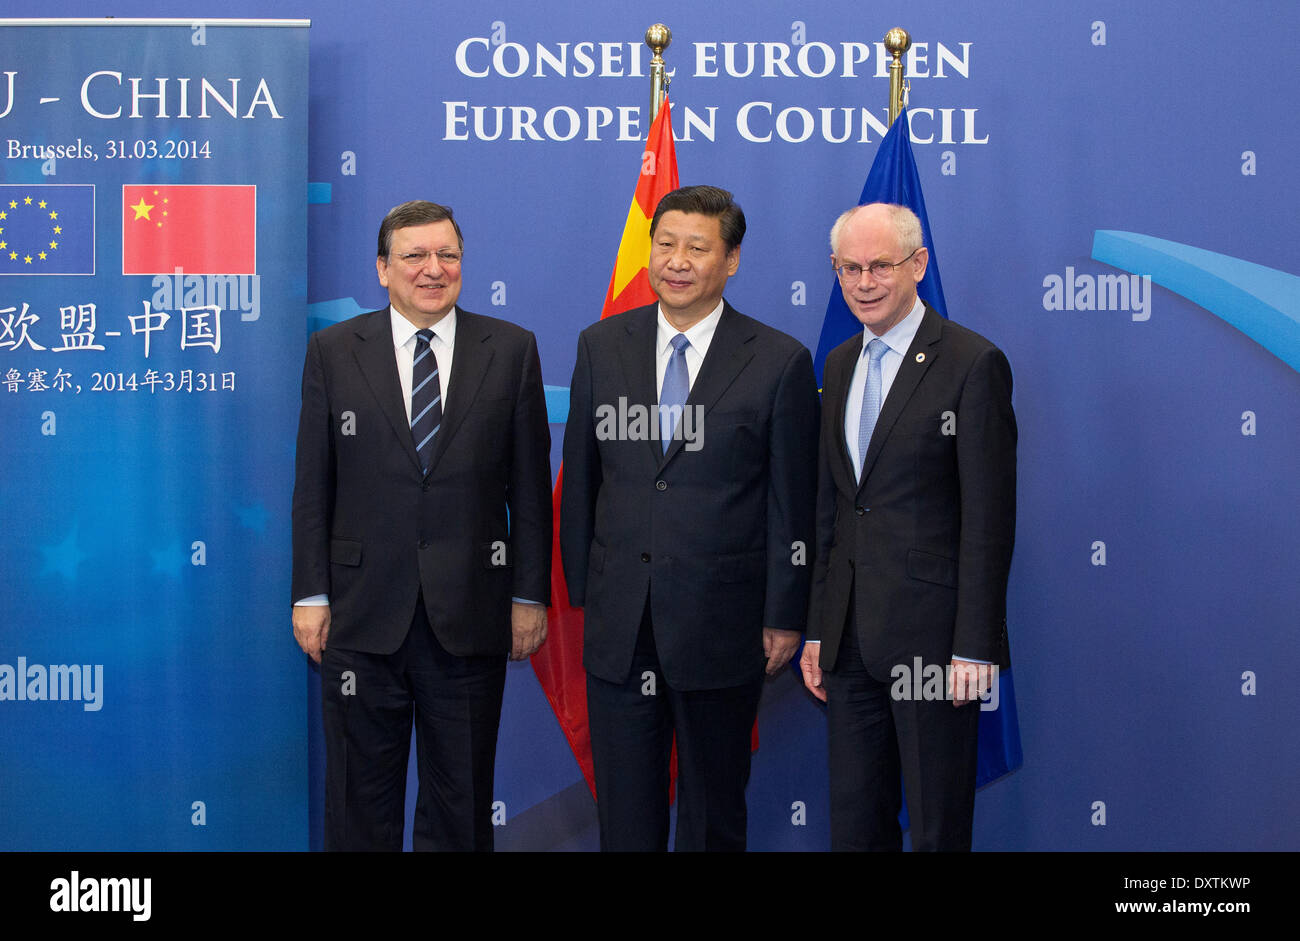 Pictured during his visit to the European Institutions was President Xi Jinping of the People's Republic of China with (left) Jose Manuel Barroso, President of the European Commission and (right) Herman Van Rompuy, President of the European Council. - Stock Image